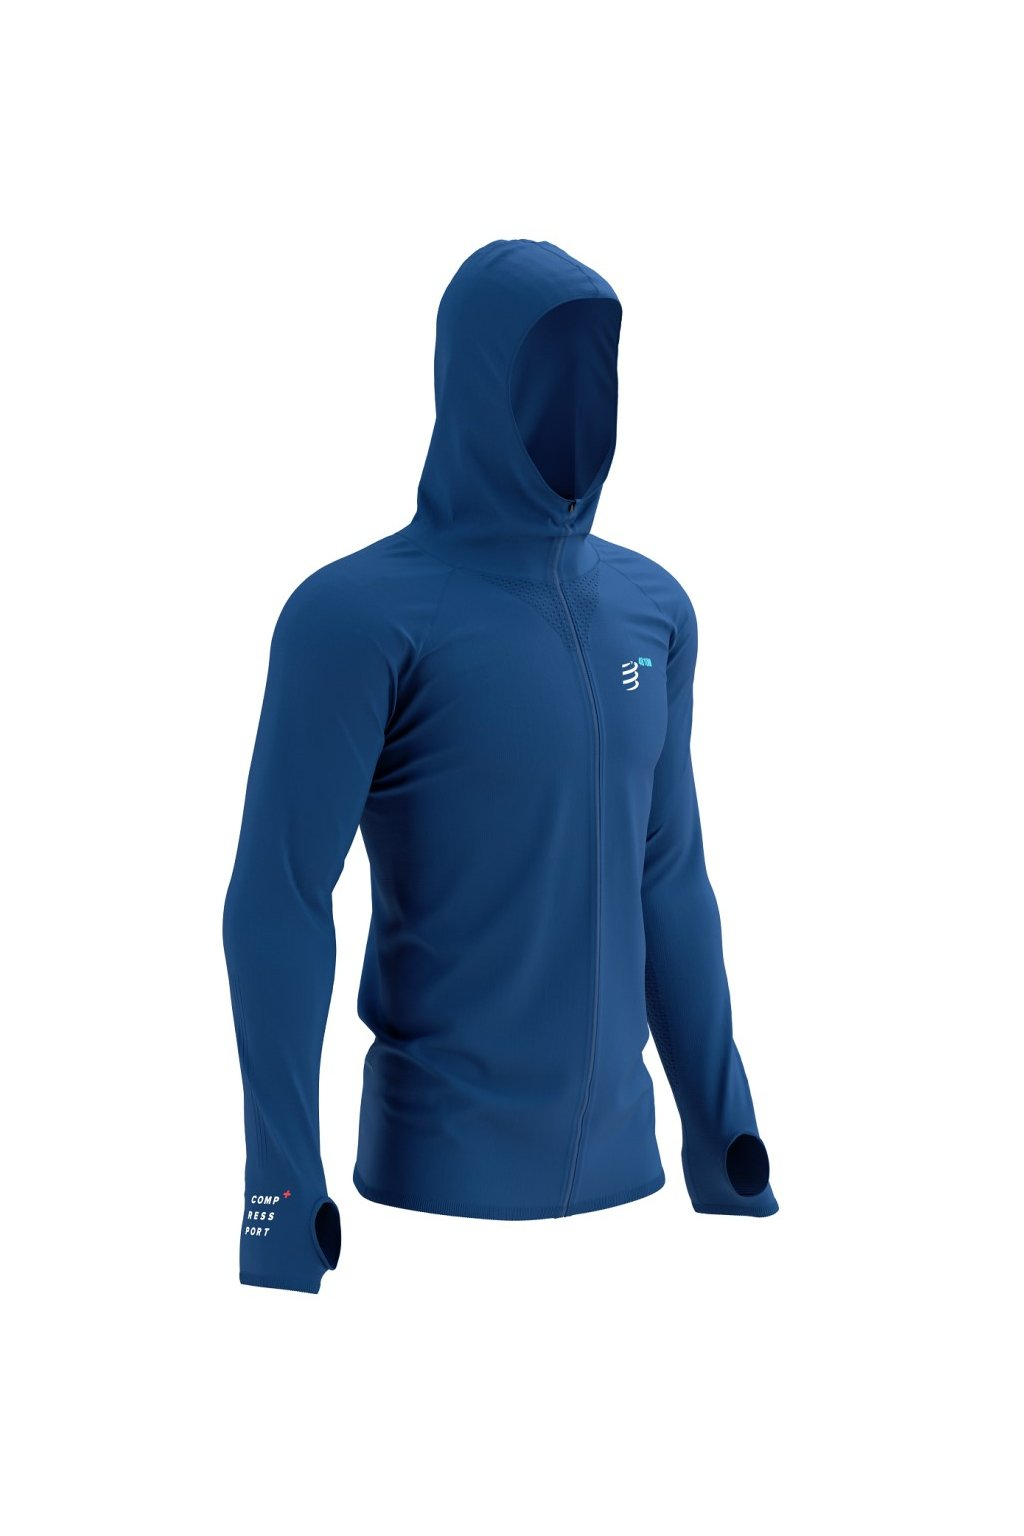 3d thermo seamless hoodie zip mont blanc 2021 (1)